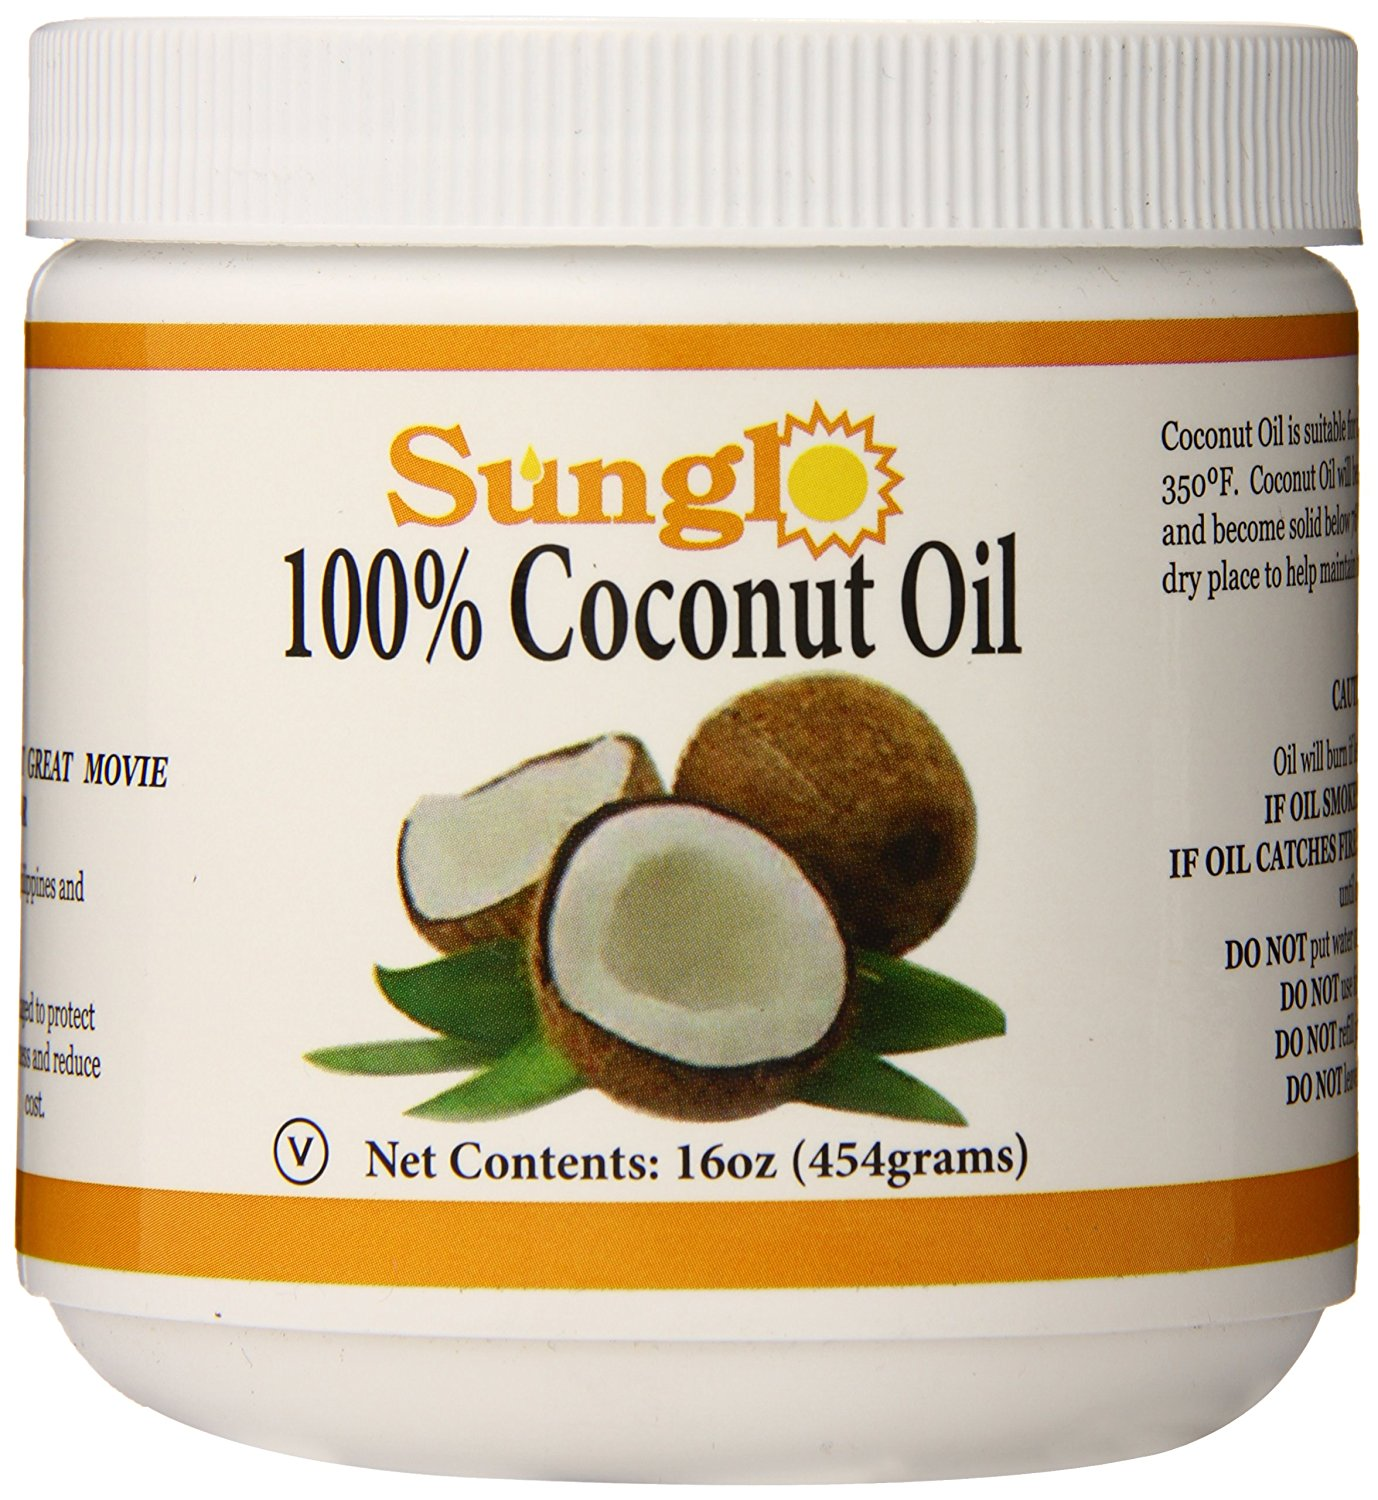 Sunglo 100% Coconut Oil